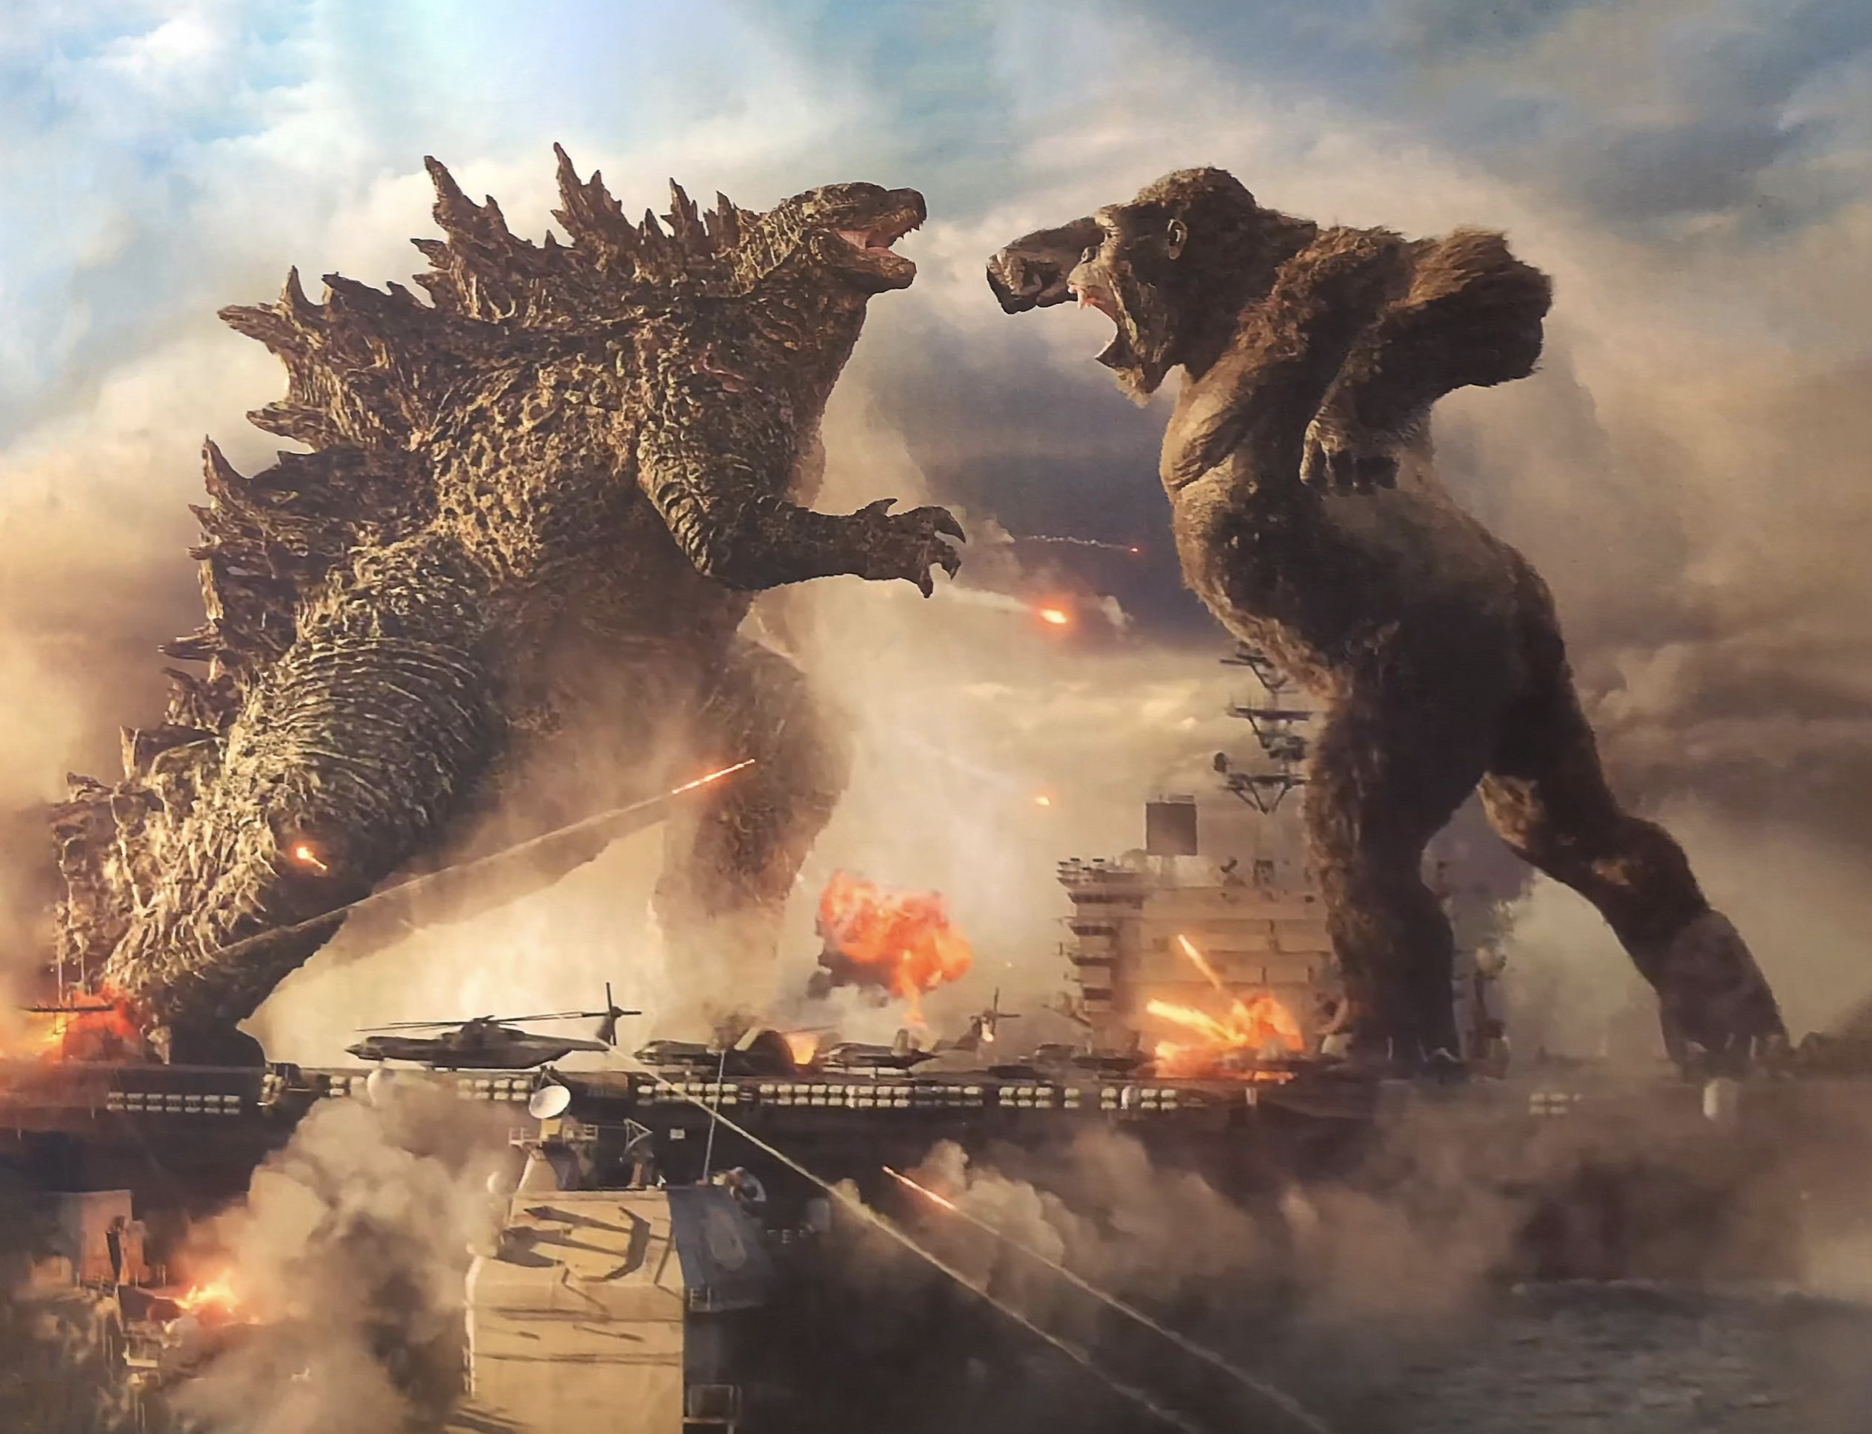 Godzilla vs Kong ©WARNER BROS. ENTERTAINMENT INC. AND LEGENDARY PICTURES PRODUCTIONS, LLC /